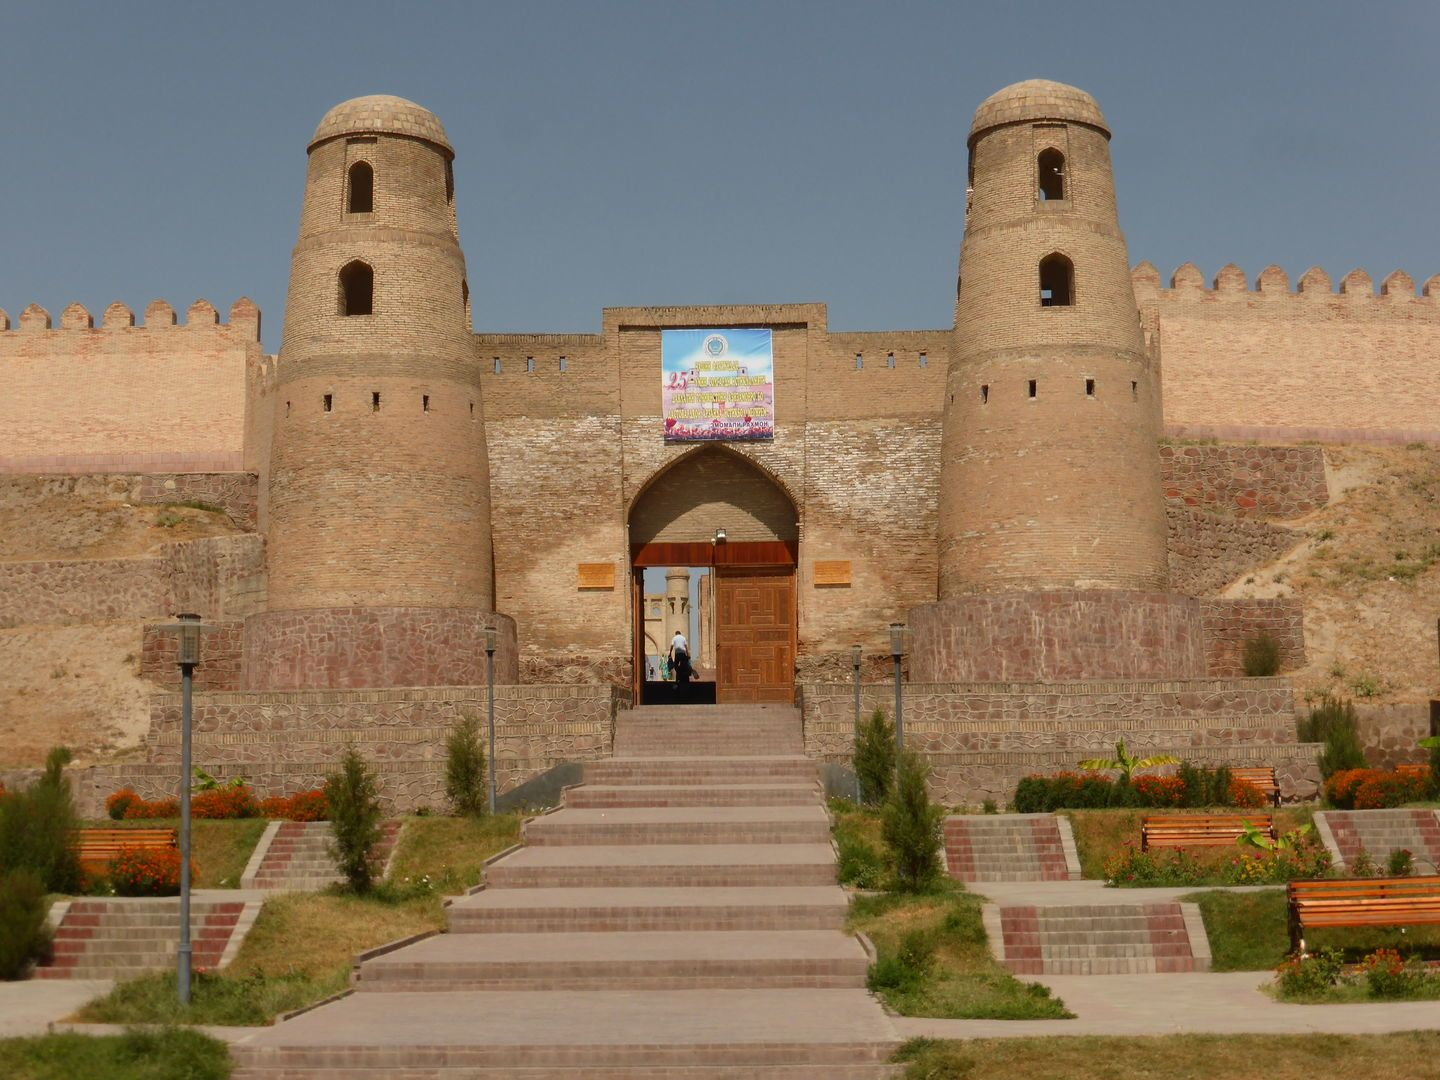 ancient fortress Hissar with two watch towers, just outside Dushanbe in central asia tour